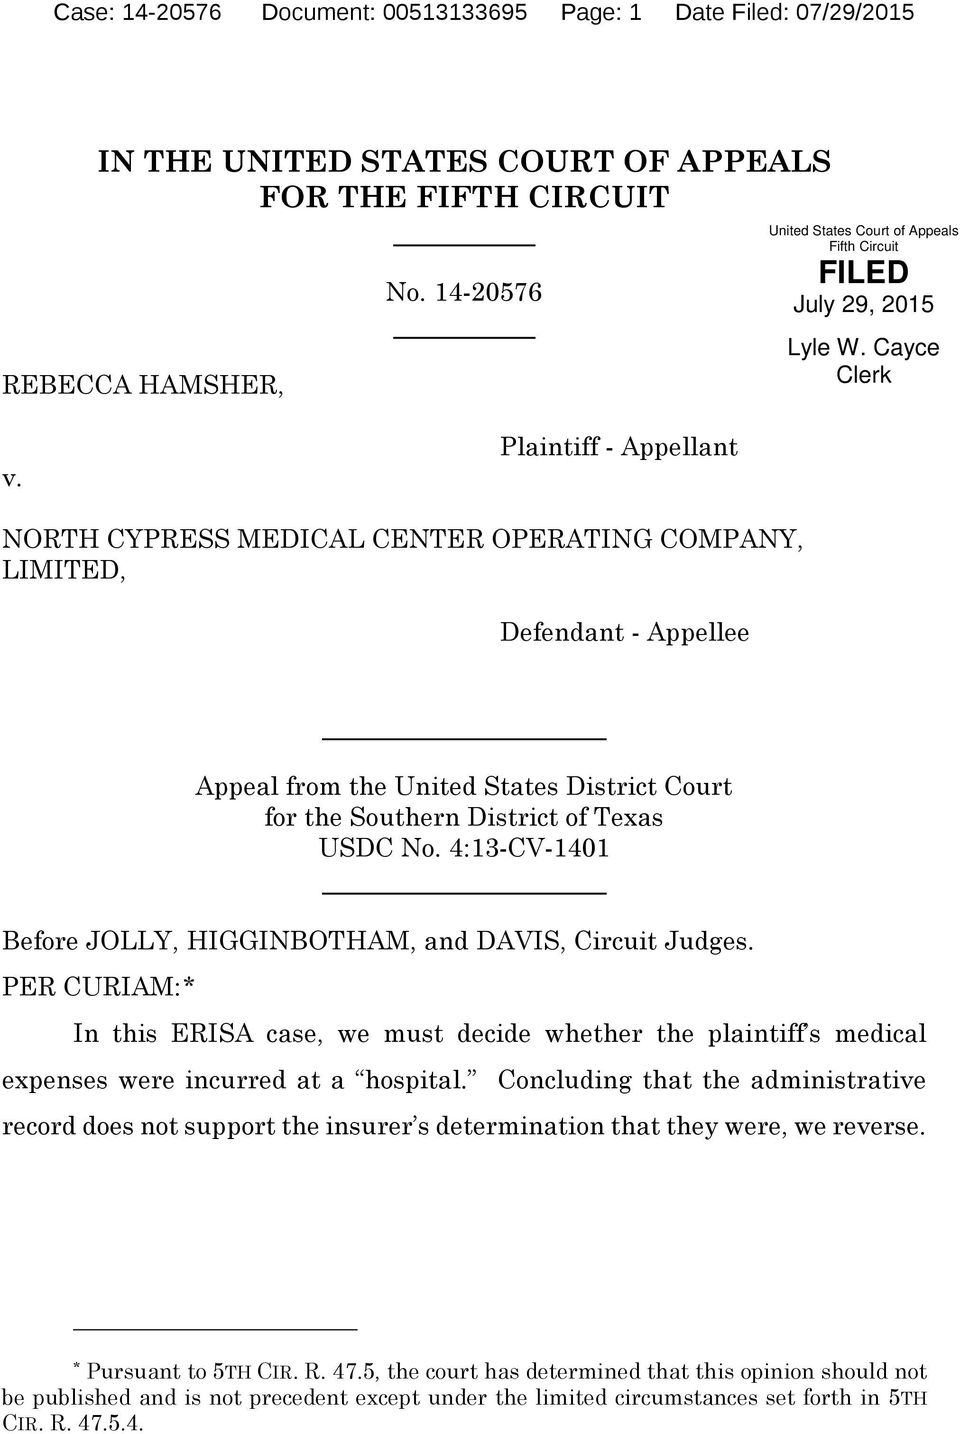 Plaintiff - Appellant NORTH CYPRESS MEDICAL CENTER OPERATING COMPANY, LIMITED, Defendant - Appellee Appeal from the United States District Court for the Southern District of Texas USDC No.